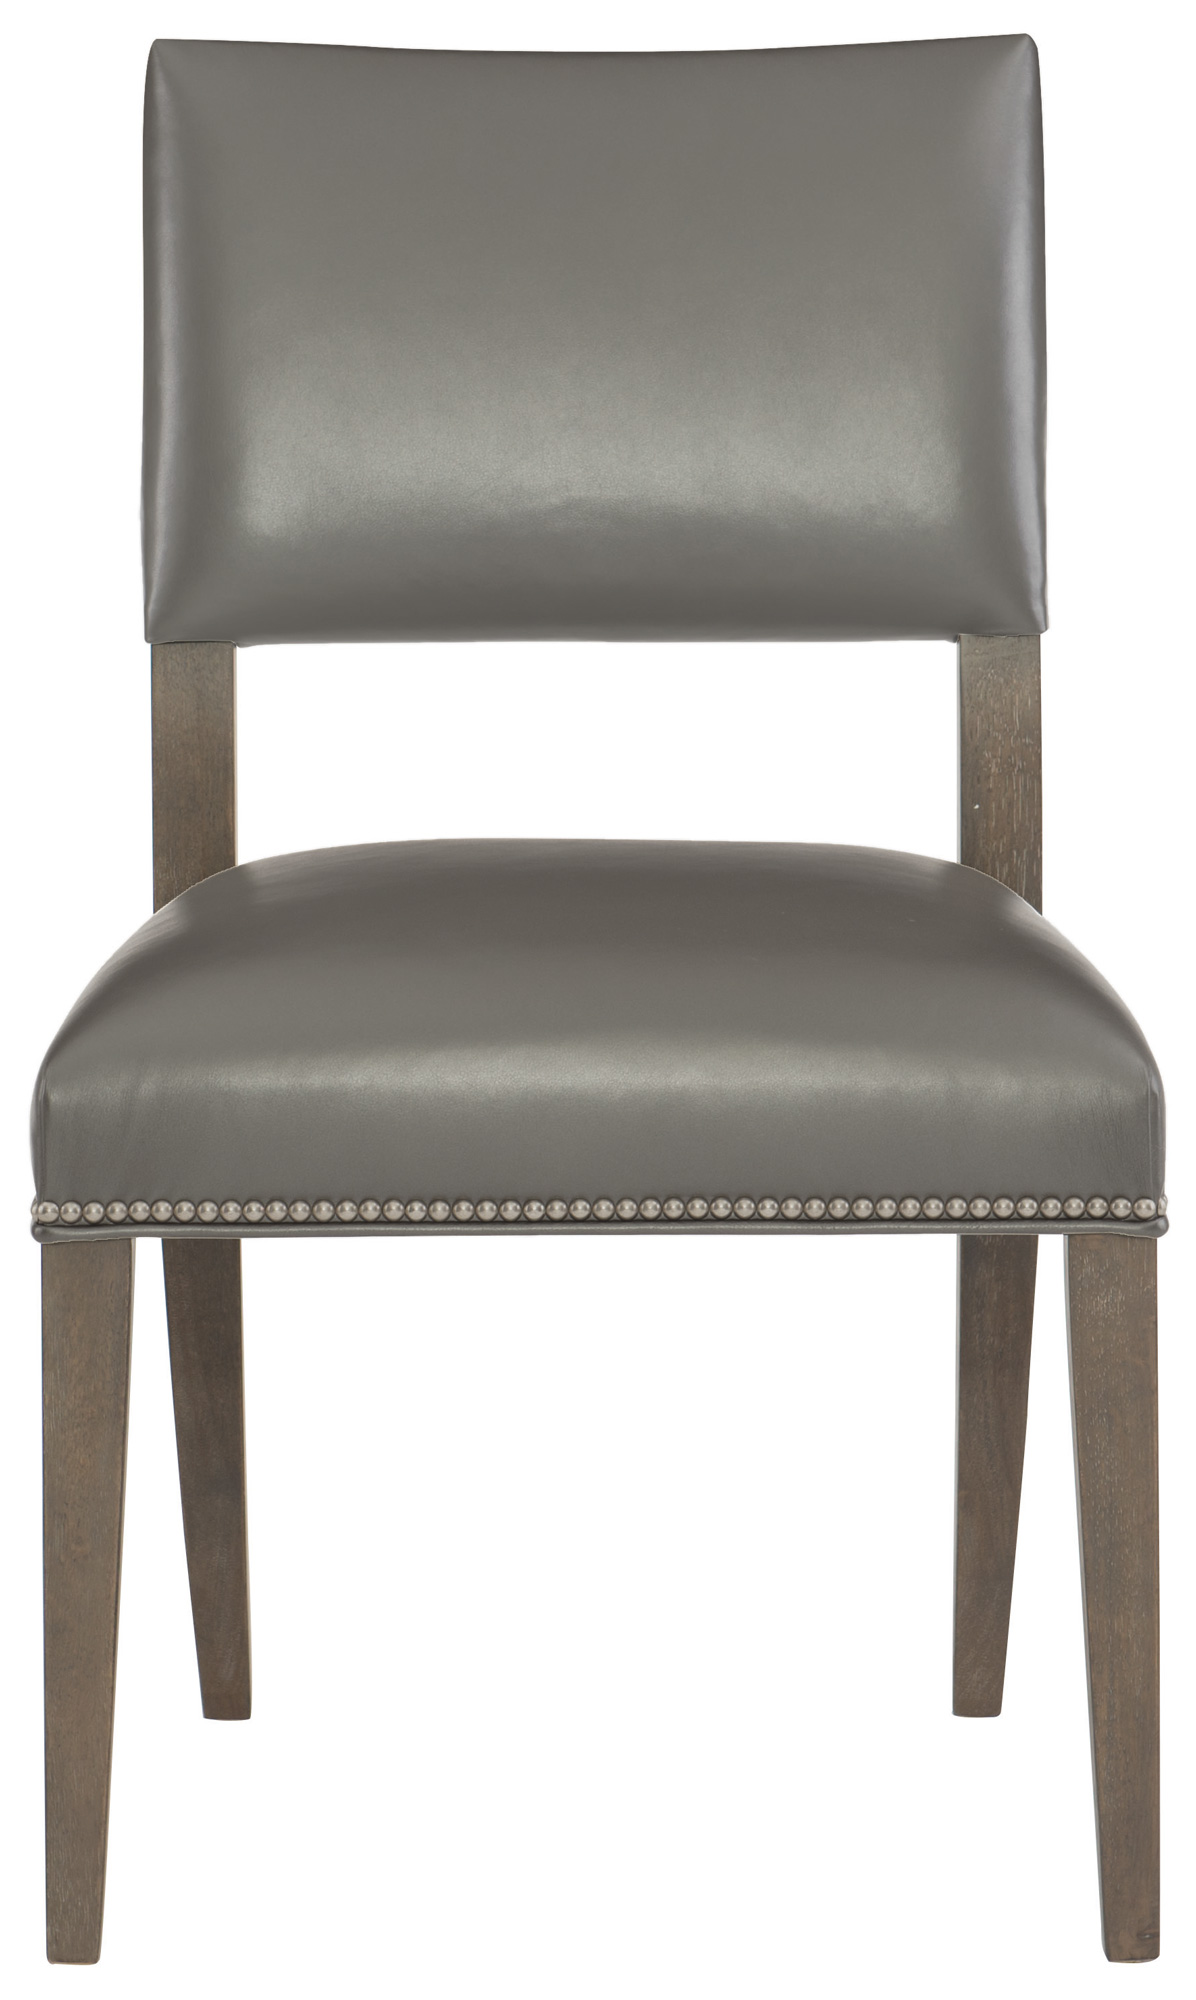 leather side chair nursery rocking australia toys r us bernhardt